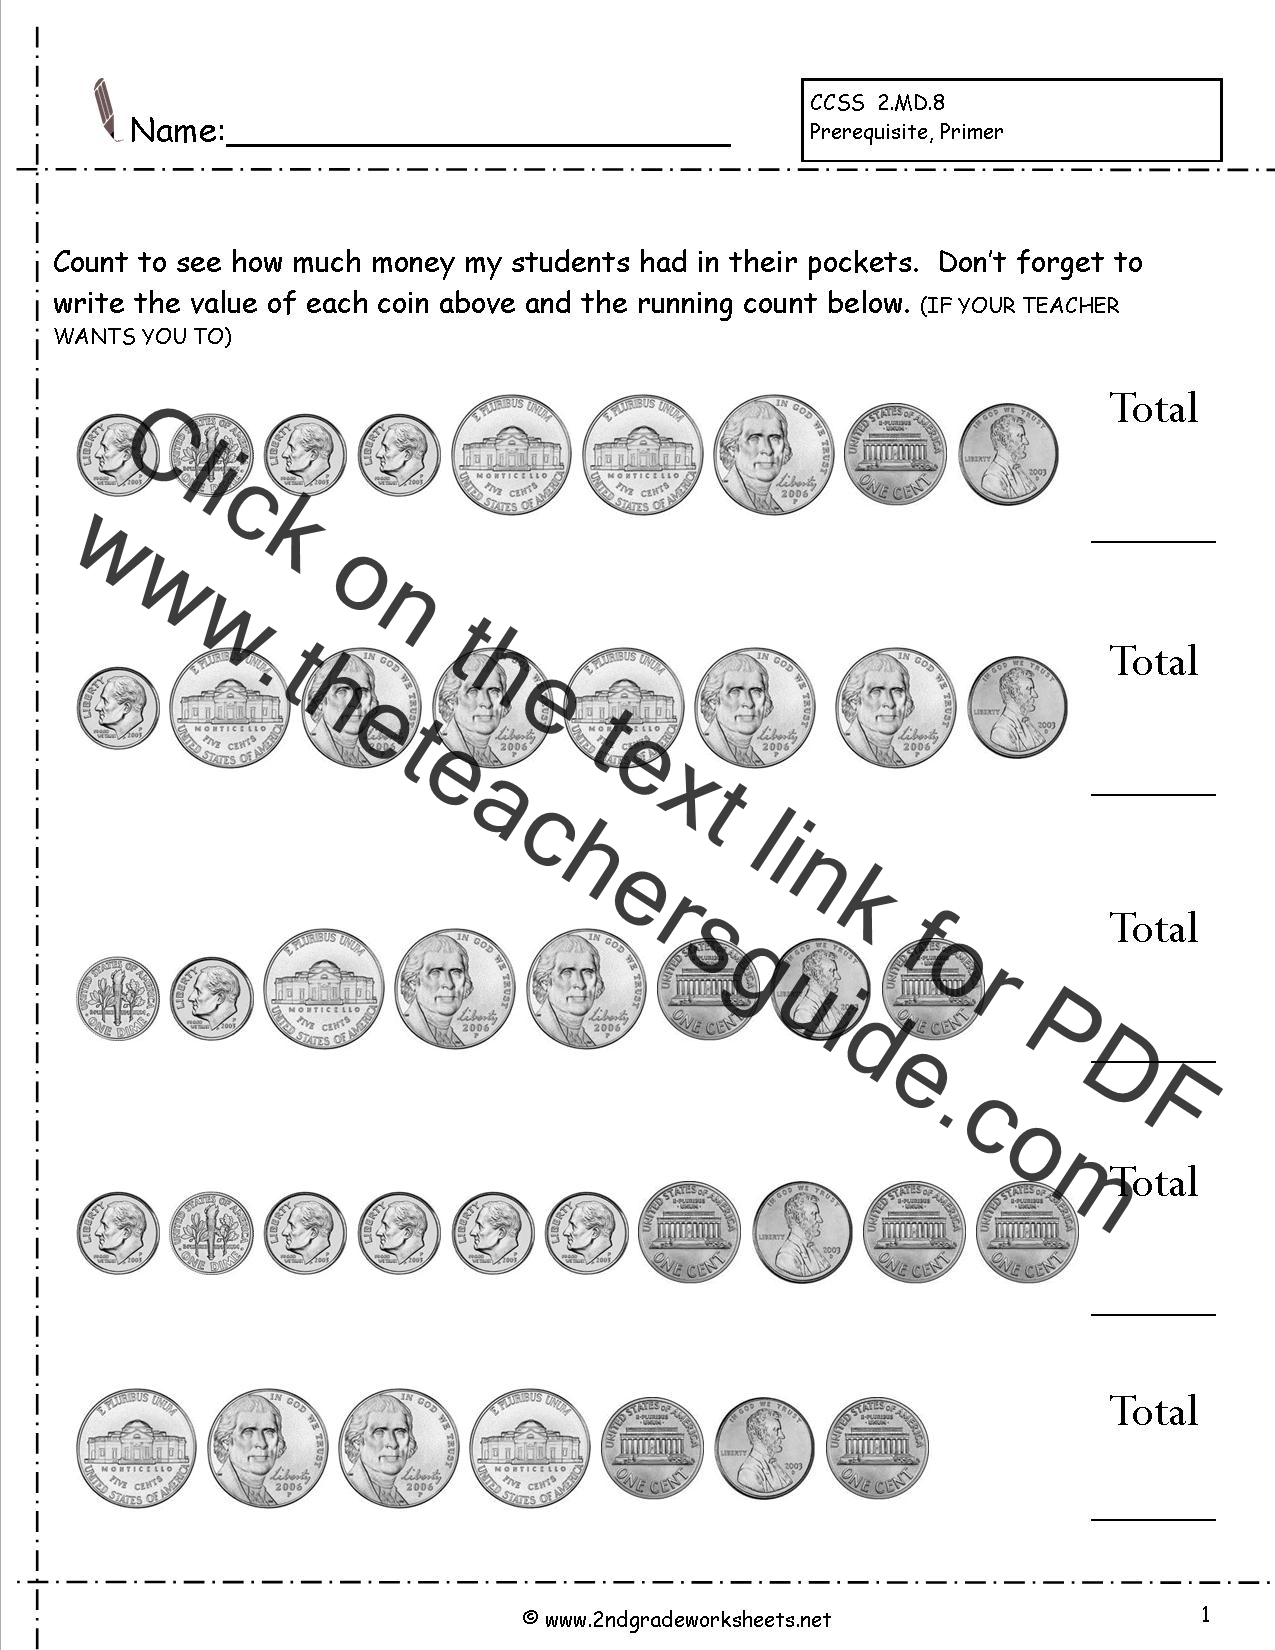 Worksheets Free Counting Money Worksheets counting coins and money worksheets printouts worksheet